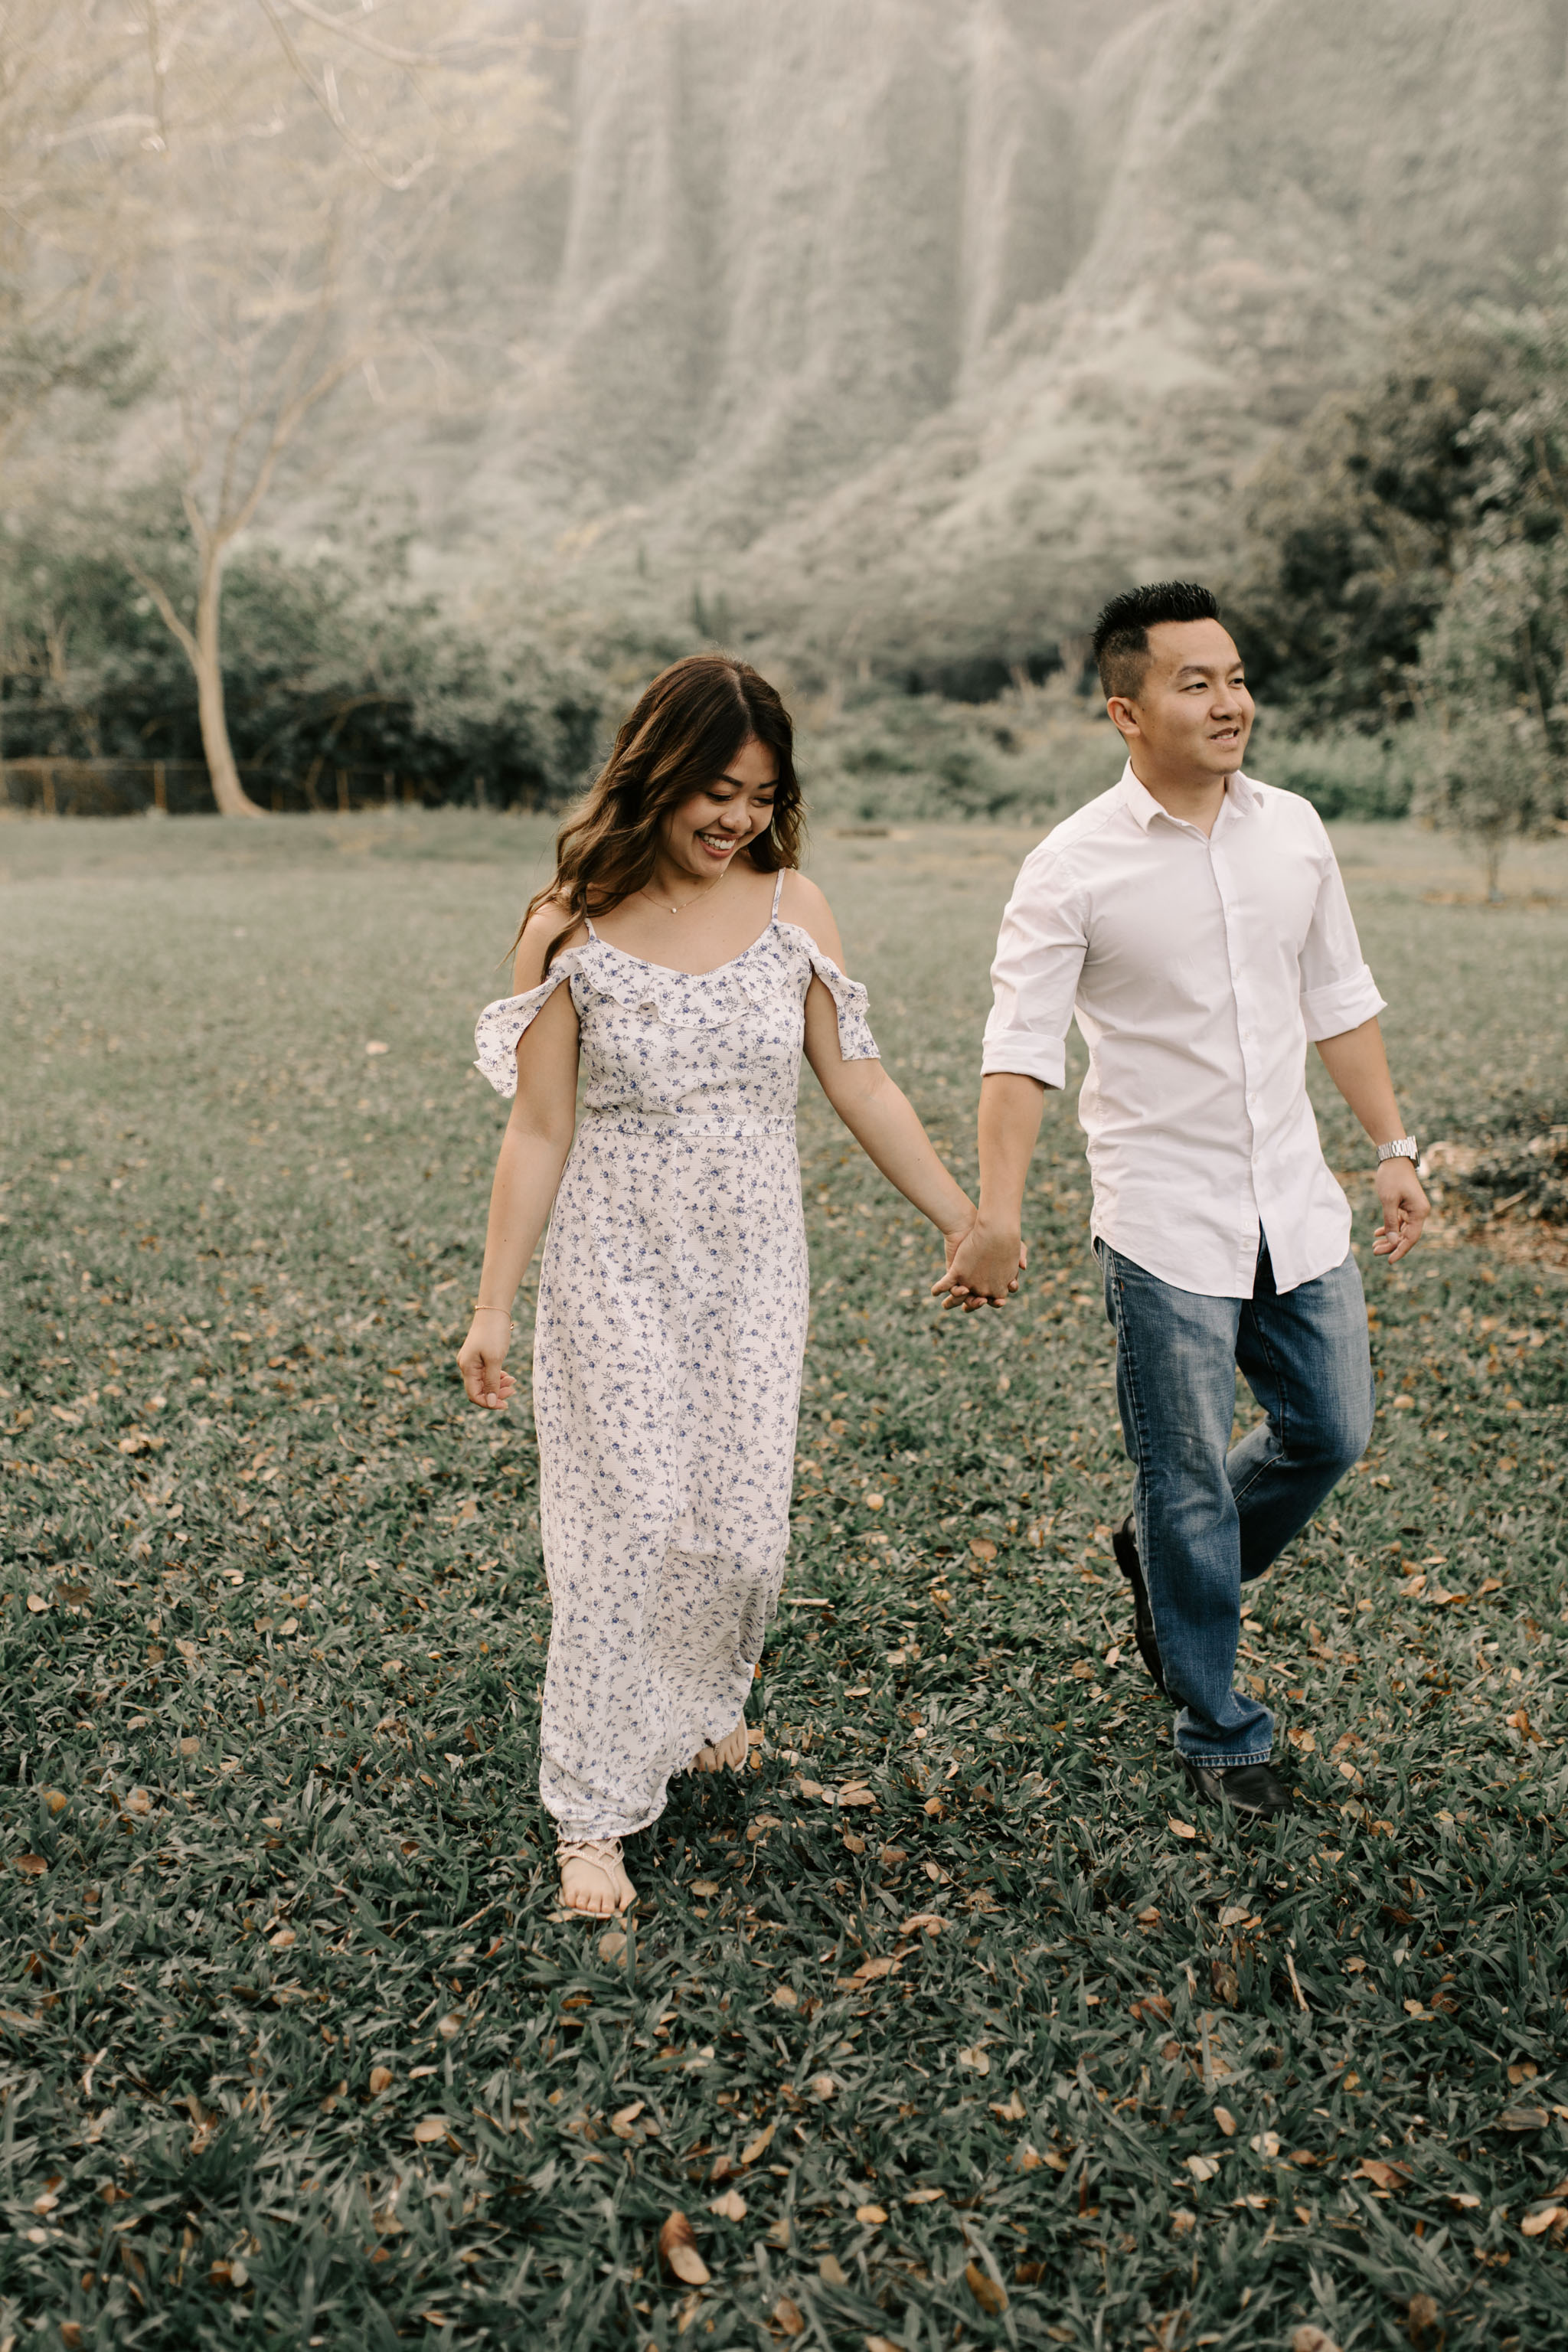 Gorgeous Engagement Photos at Hoomaluhia Botanical Gardens by Hawaii Wedding Photographer Desiree Leilani